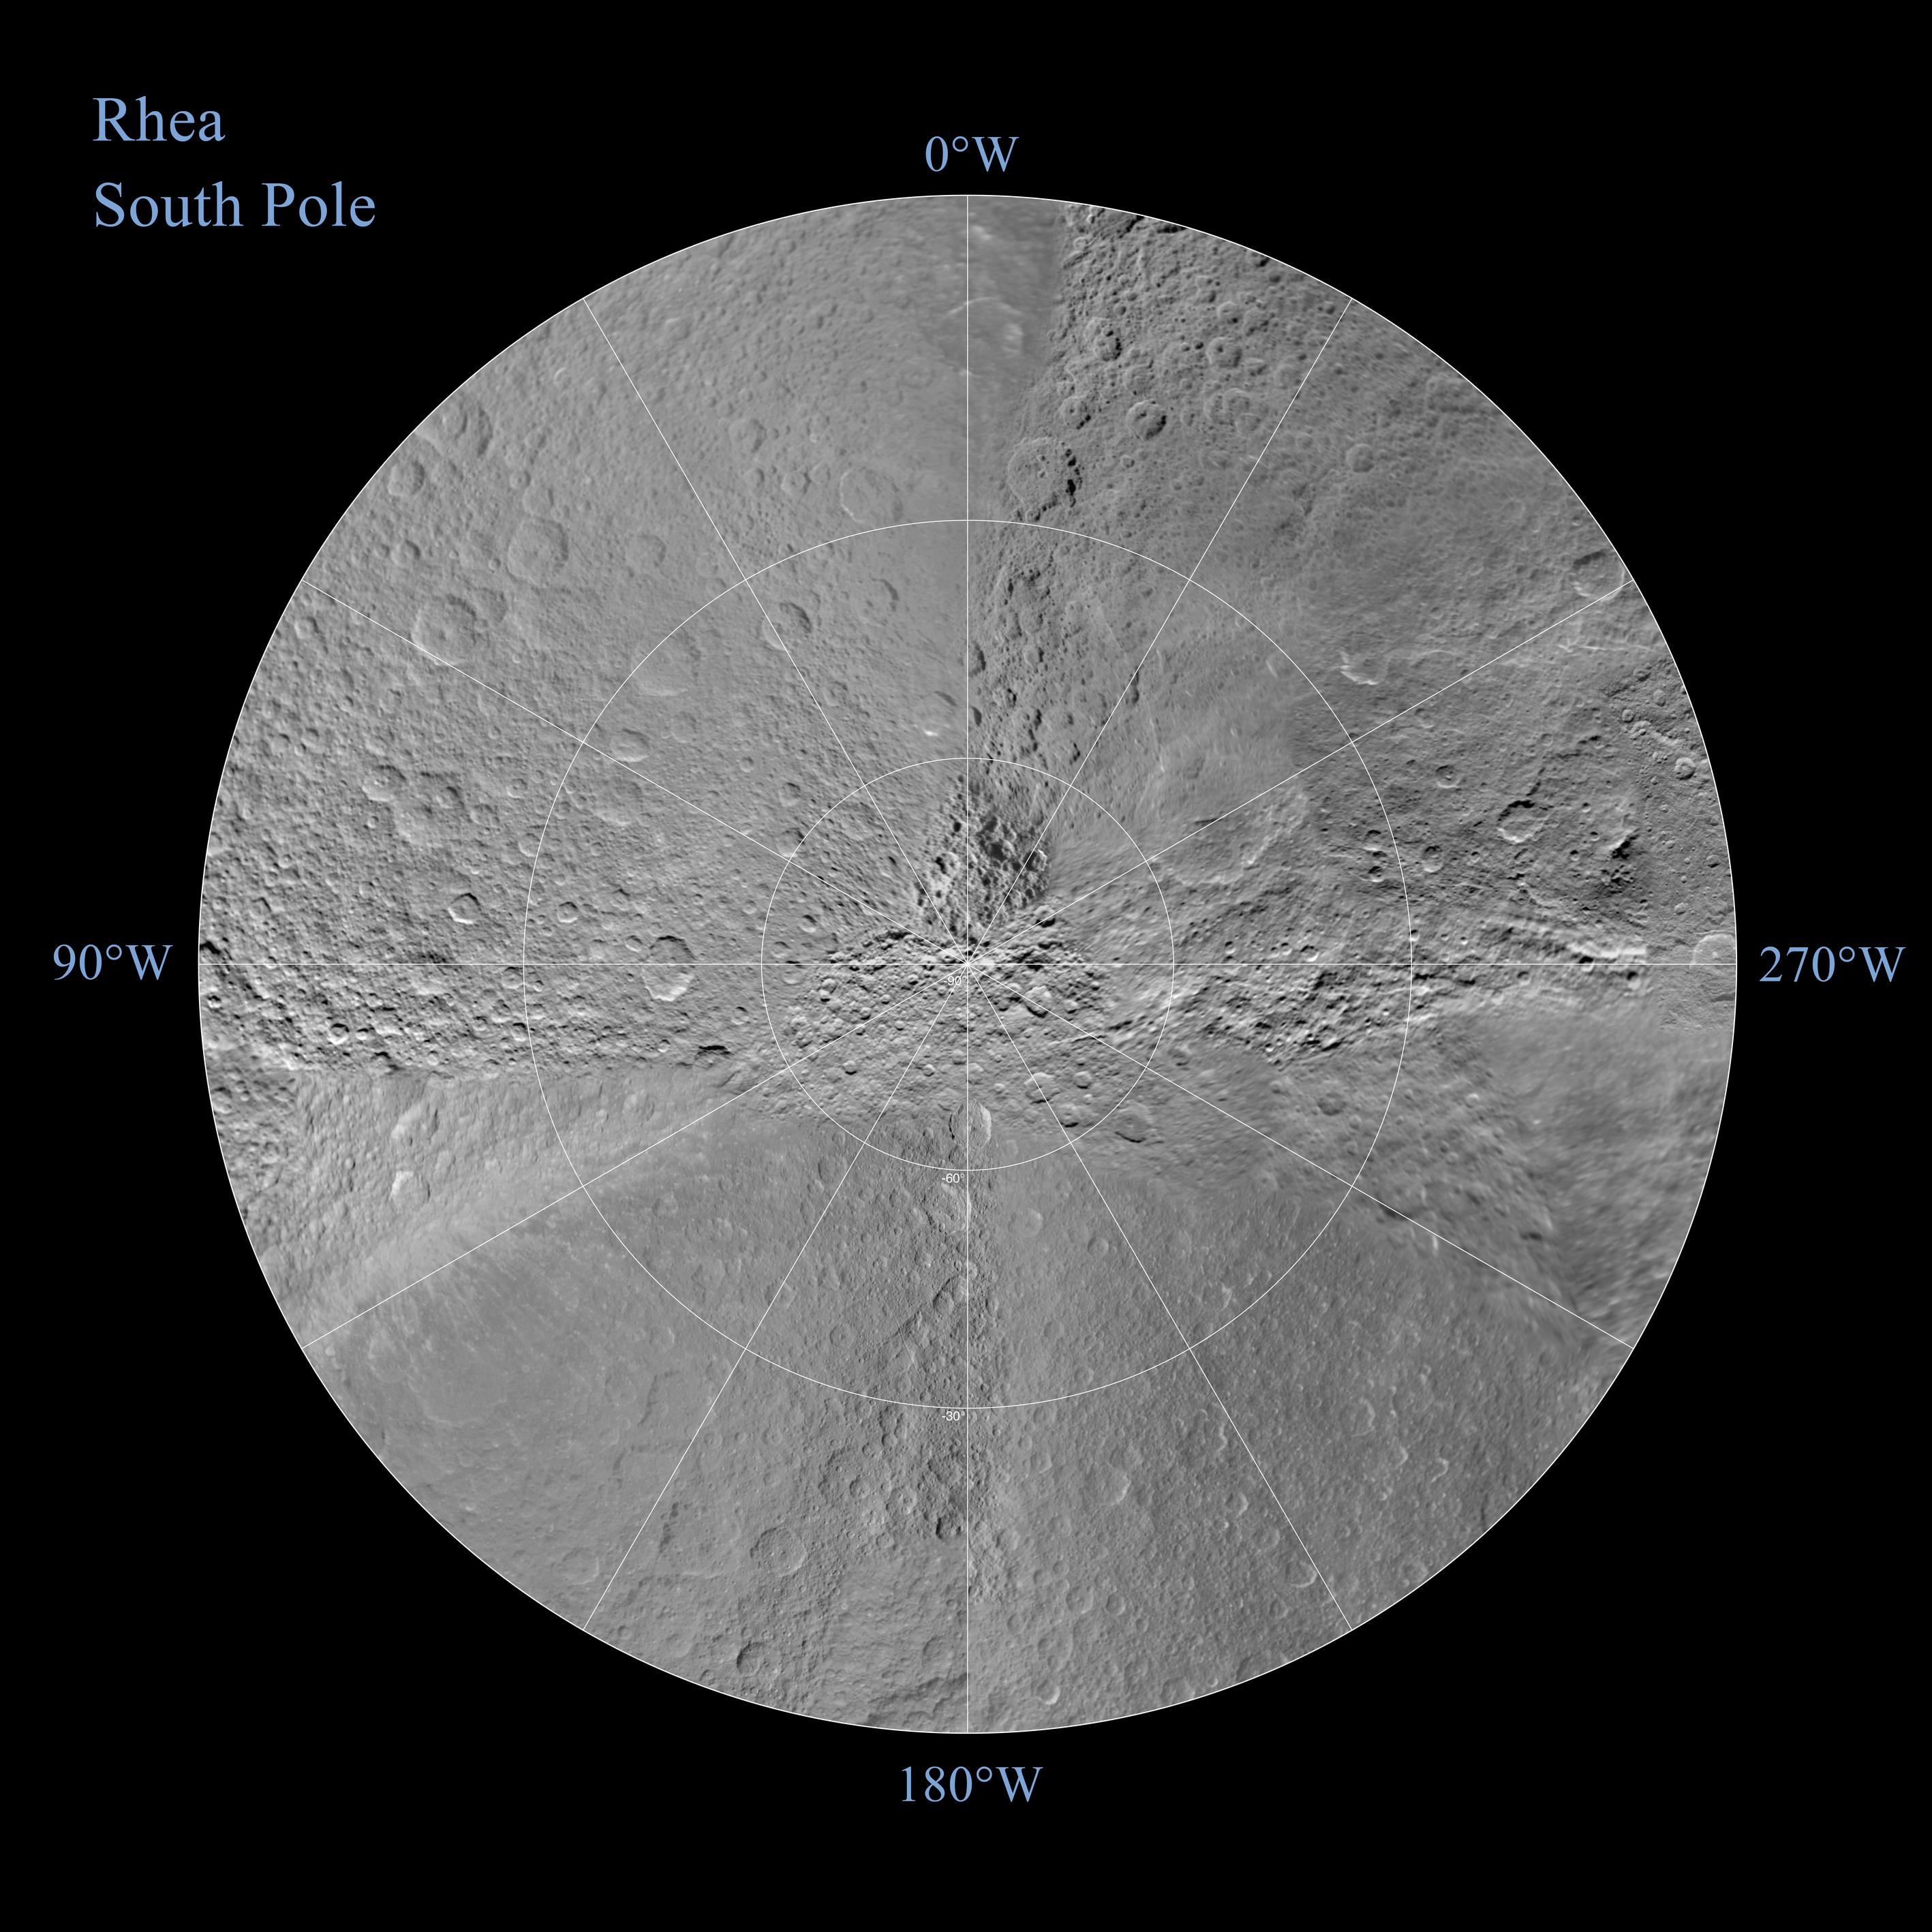 A polar stereographic map of Rhea